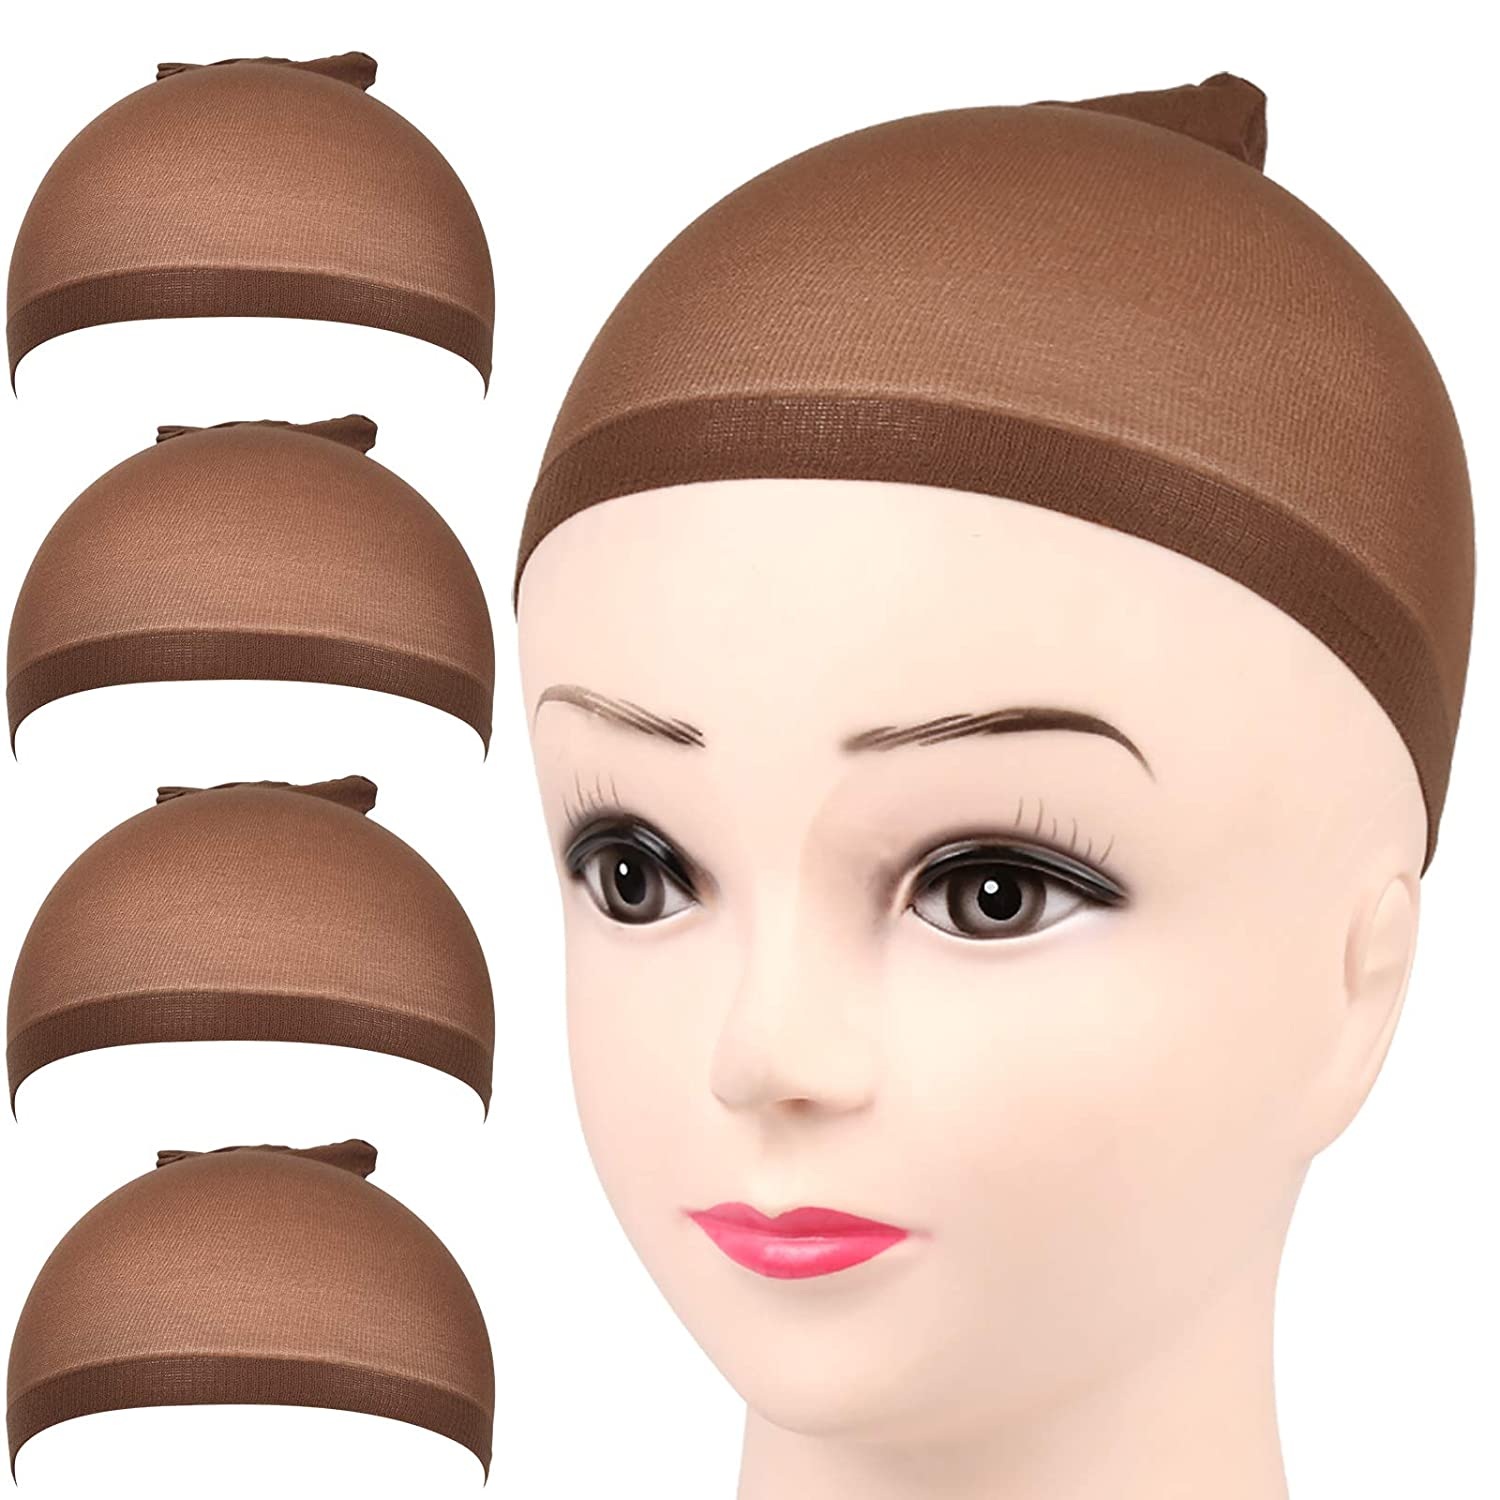 FANDAMEI 4 pieces Dark Brown ! Super beauty product restock quality top! Stocking Nylon Wig Stretchy Wi Bombing new work Caps